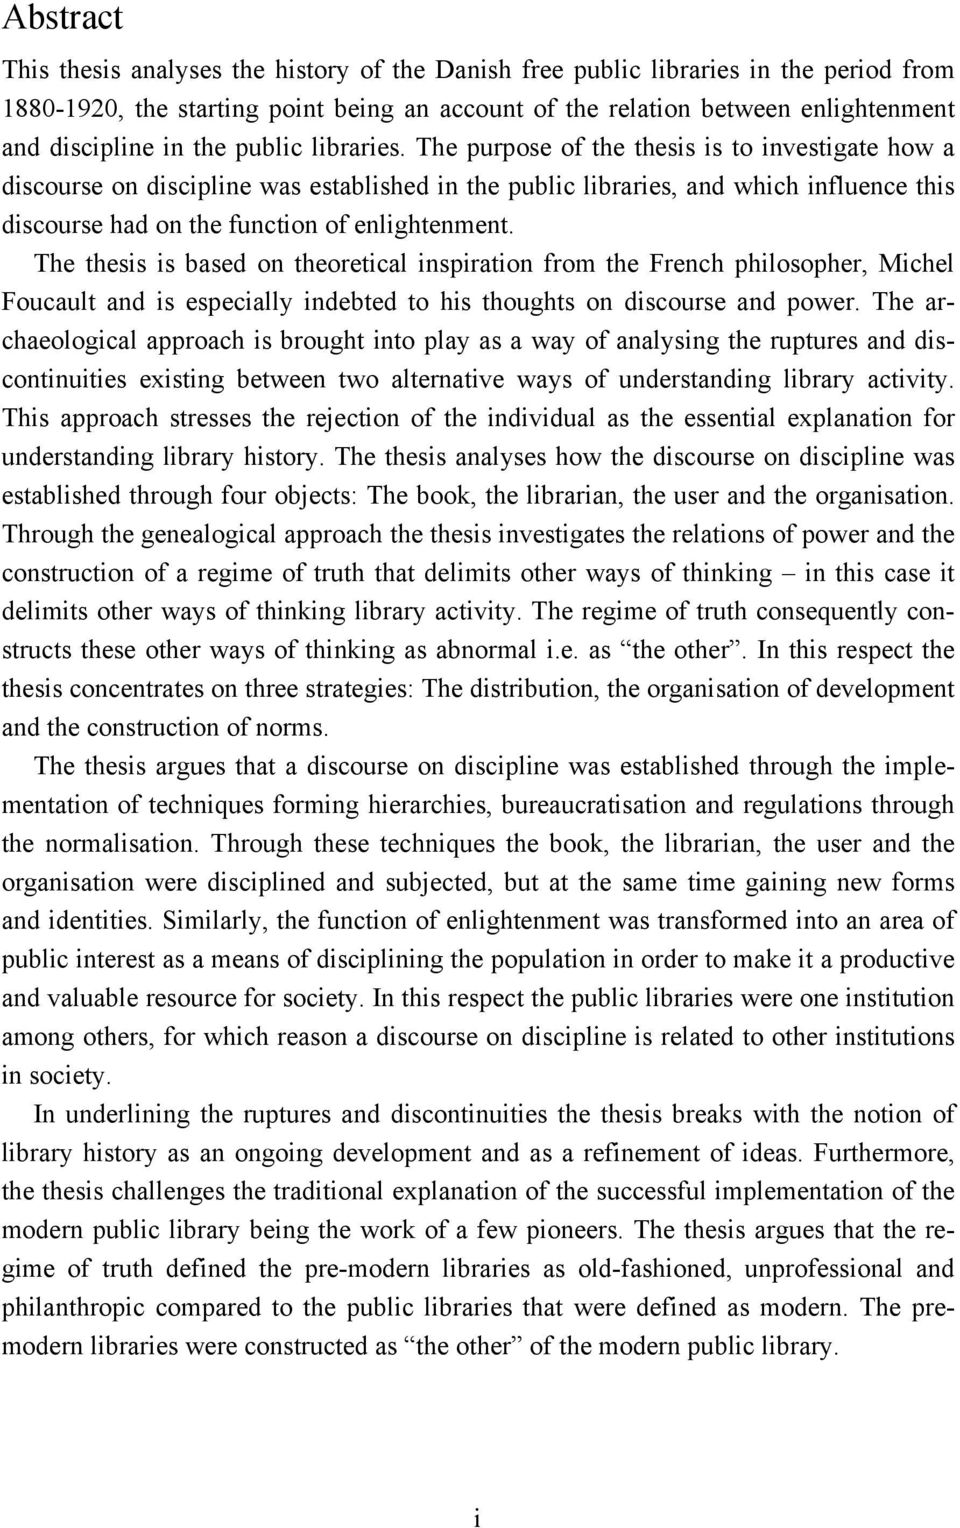 The purpose of the thesis is to investigate how a discourse on discipline was established in the public libraries, and which influence this discourse had on the function of enlightenment.